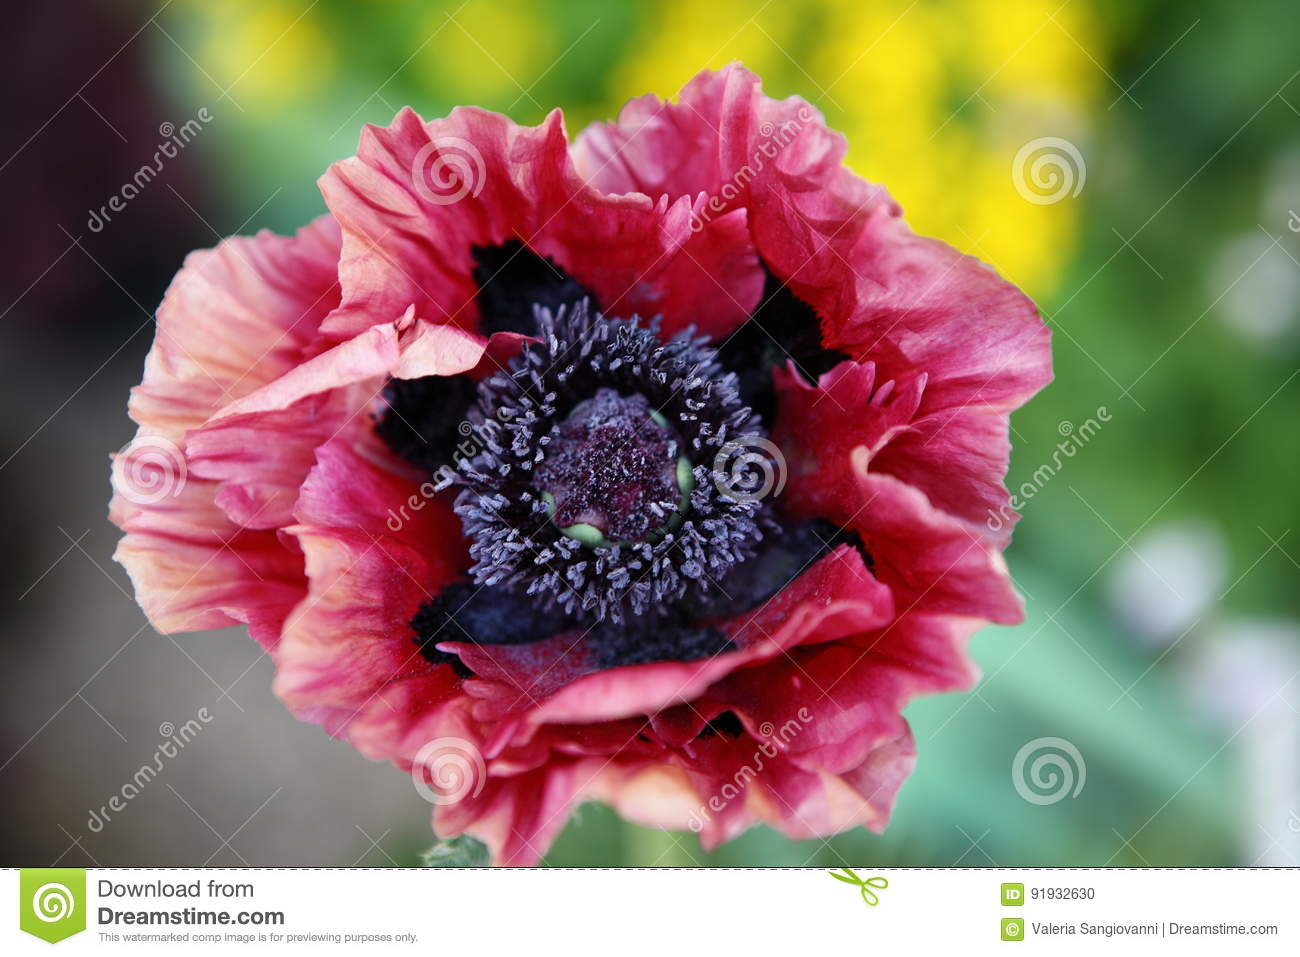 Big red and black poppy flower stock photo image of center download big red and black poppy flower stock photo image of center poppies mightylinksfo